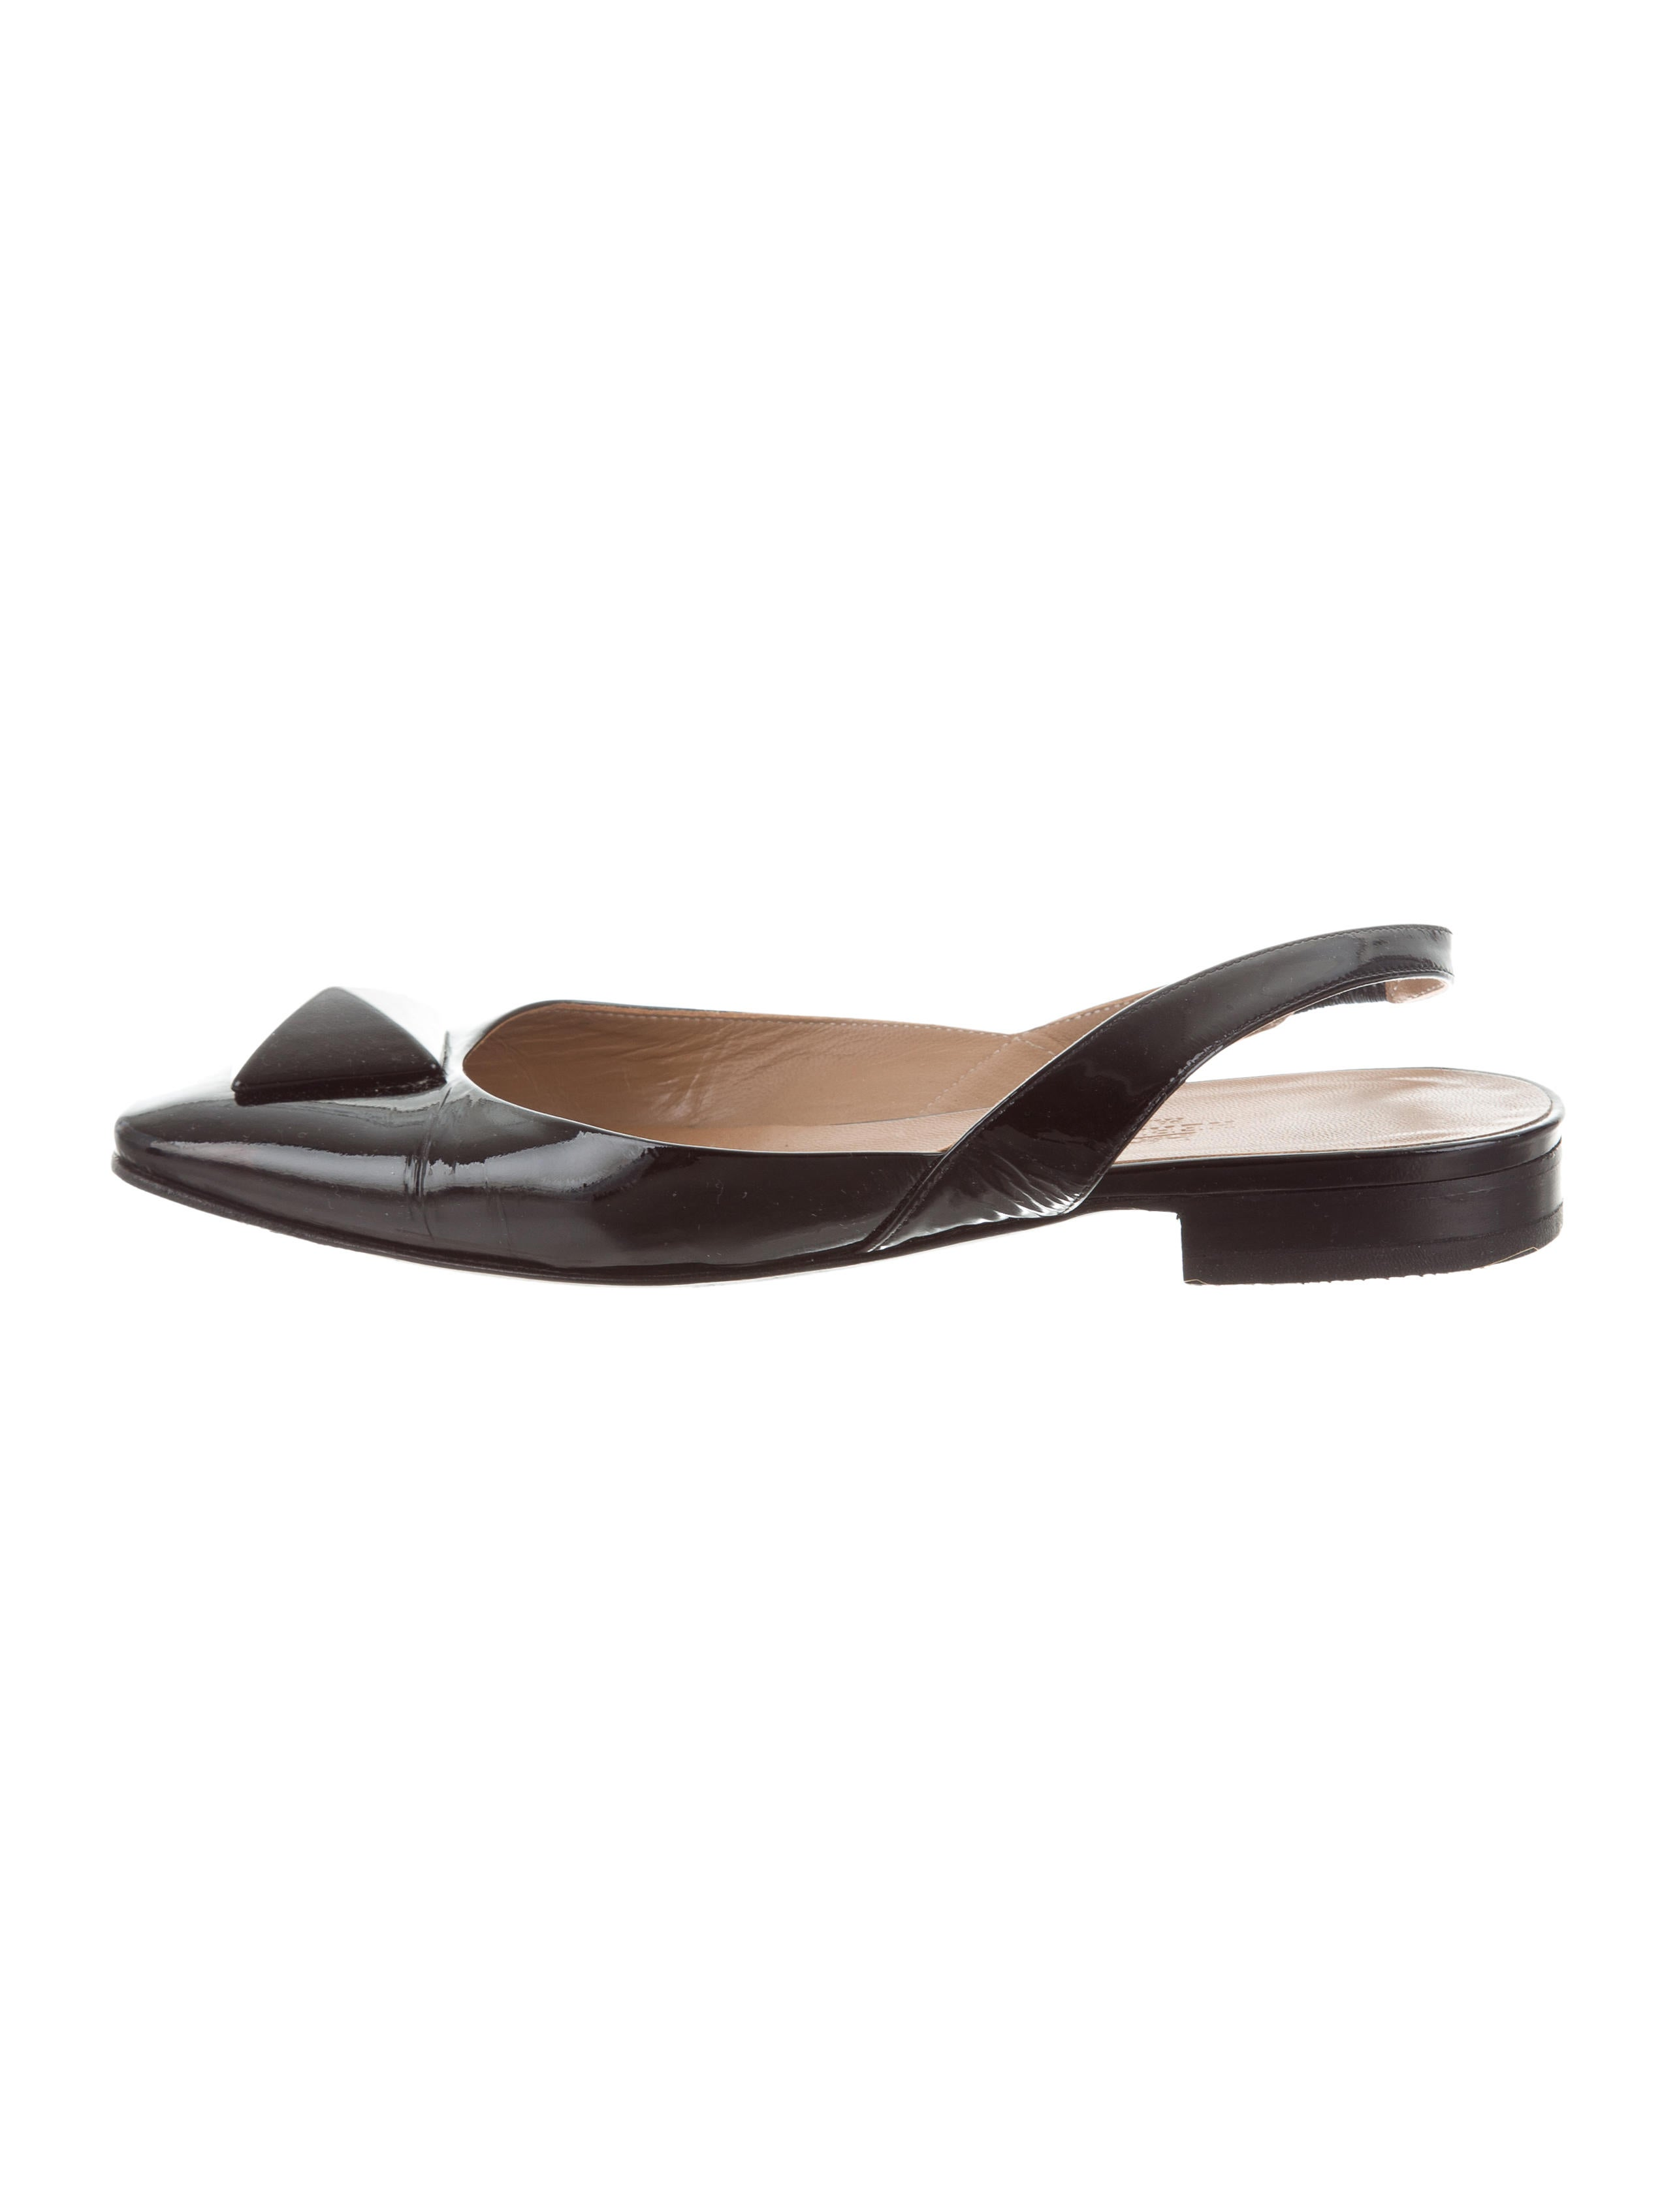 Hermès Square-Toe Slingback Flats free shipping best store to get 7ZsZsrG